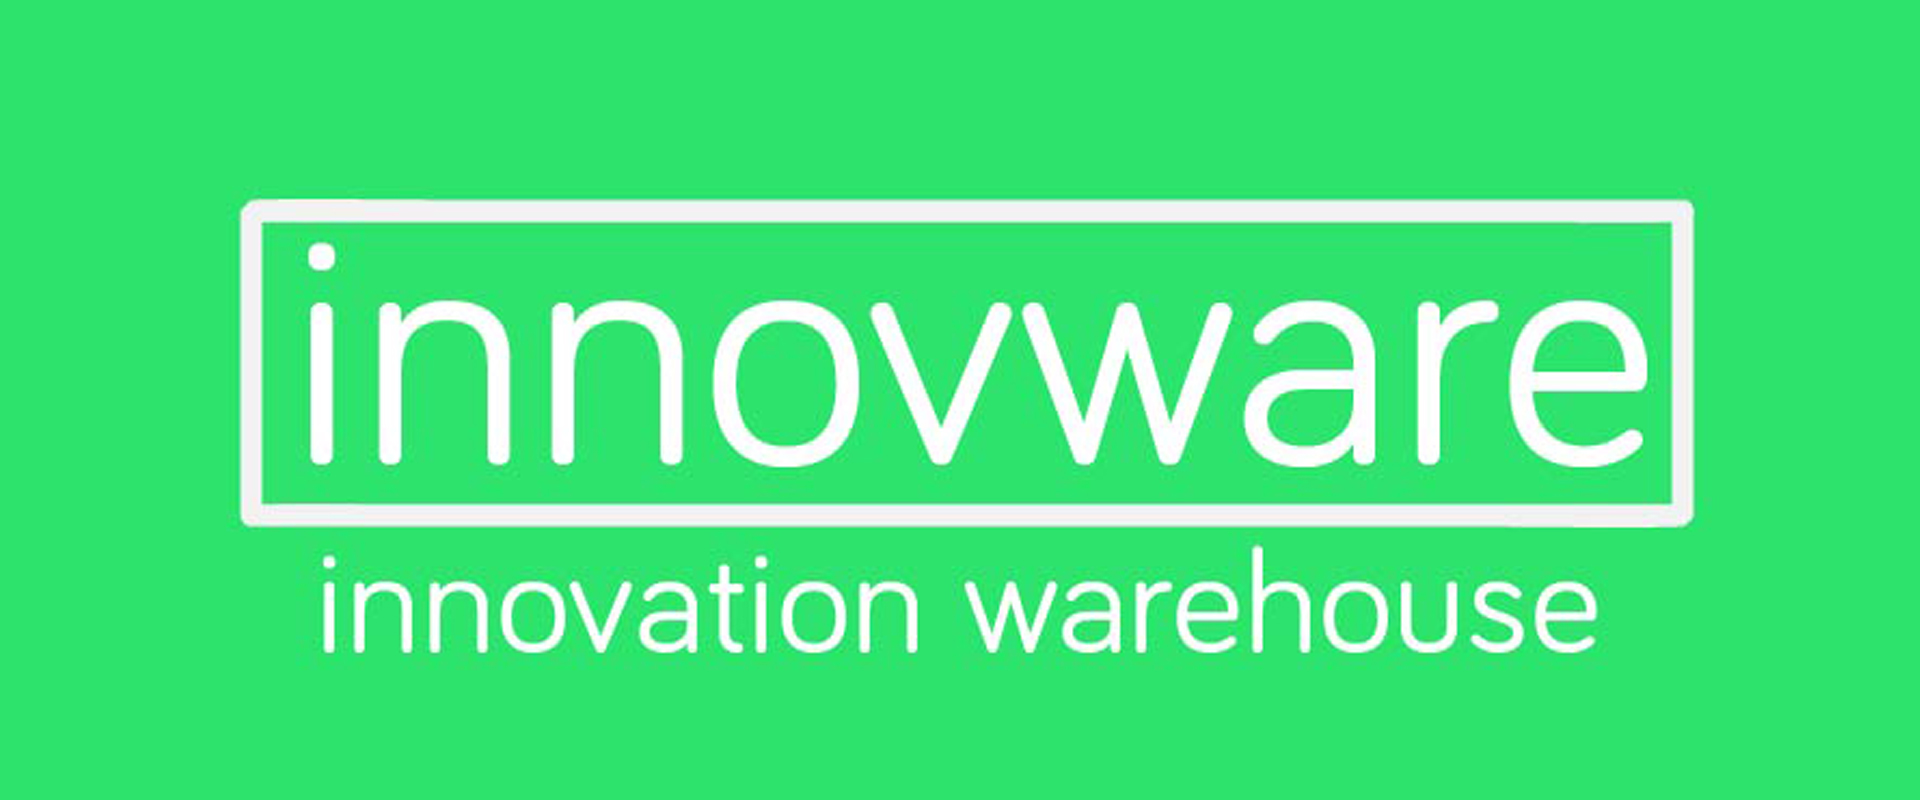 Innovation-Warehouse | Innovware